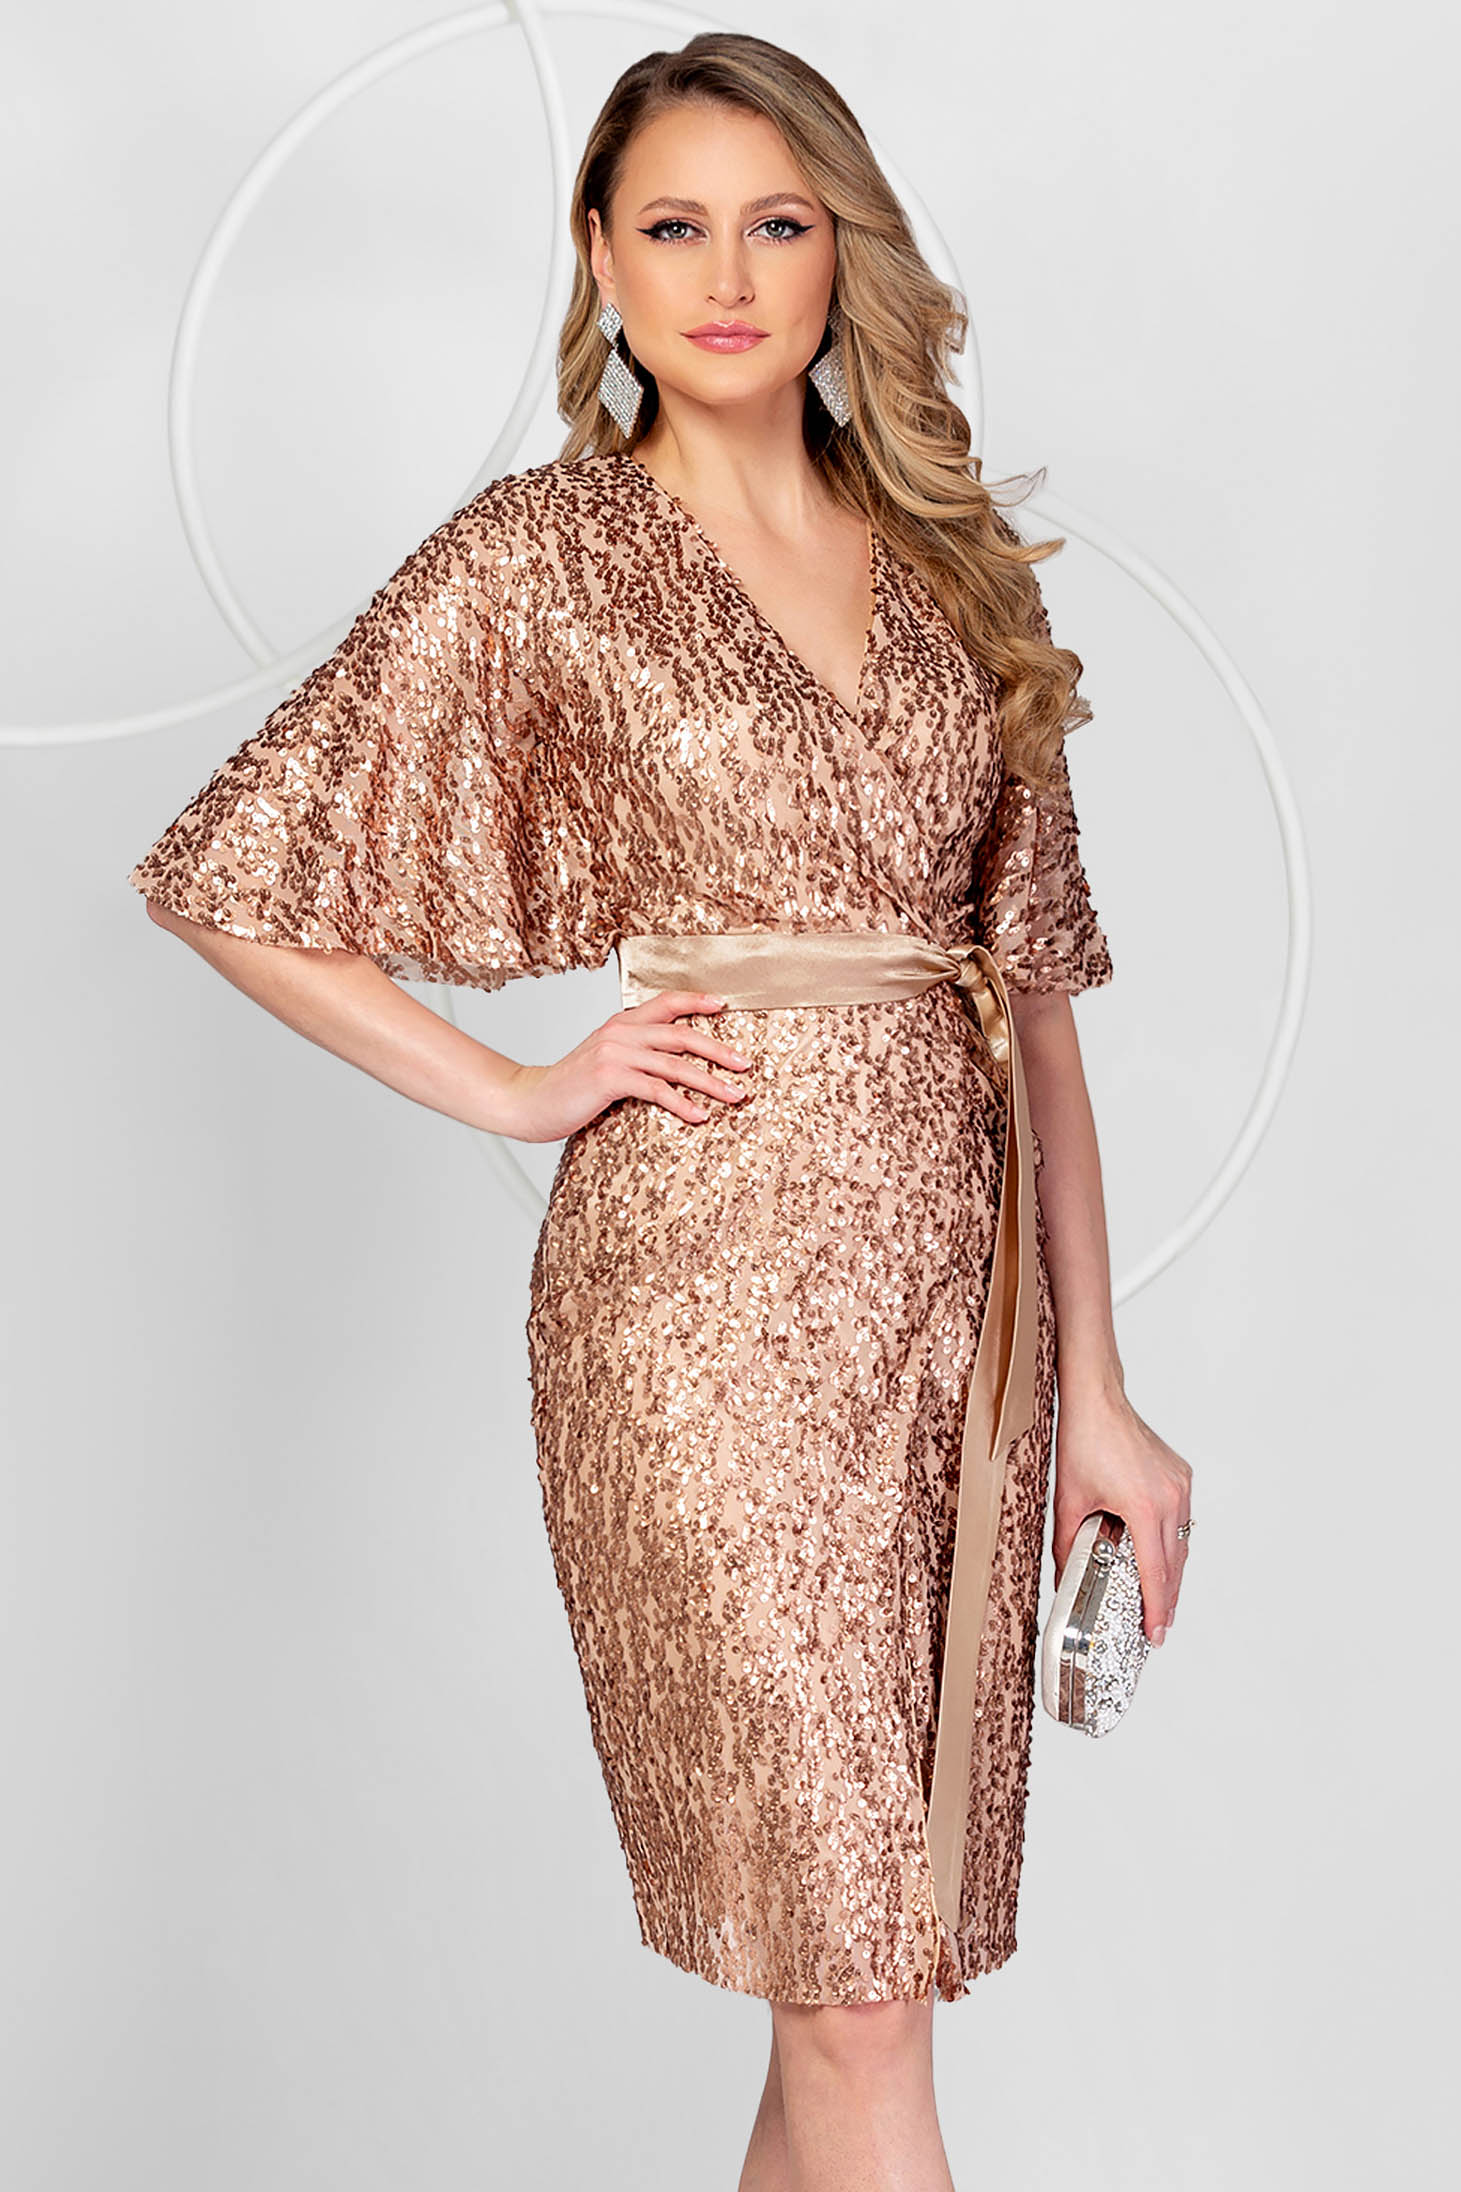 Gold dress occasional a-line with sequins with butterfly sleeves